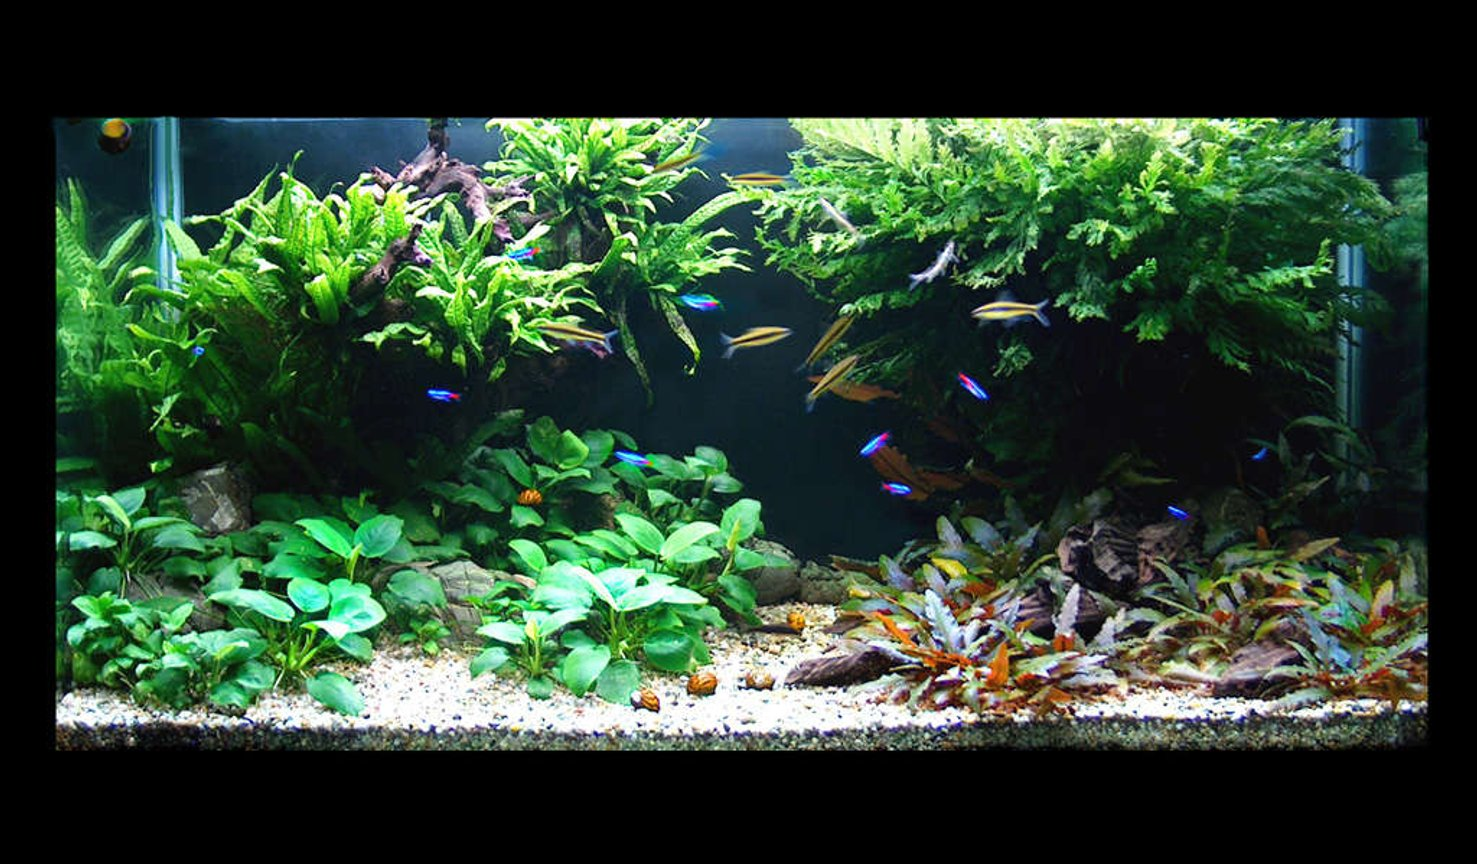 60 gallons planted tank (mostly live plants and fish) - front view